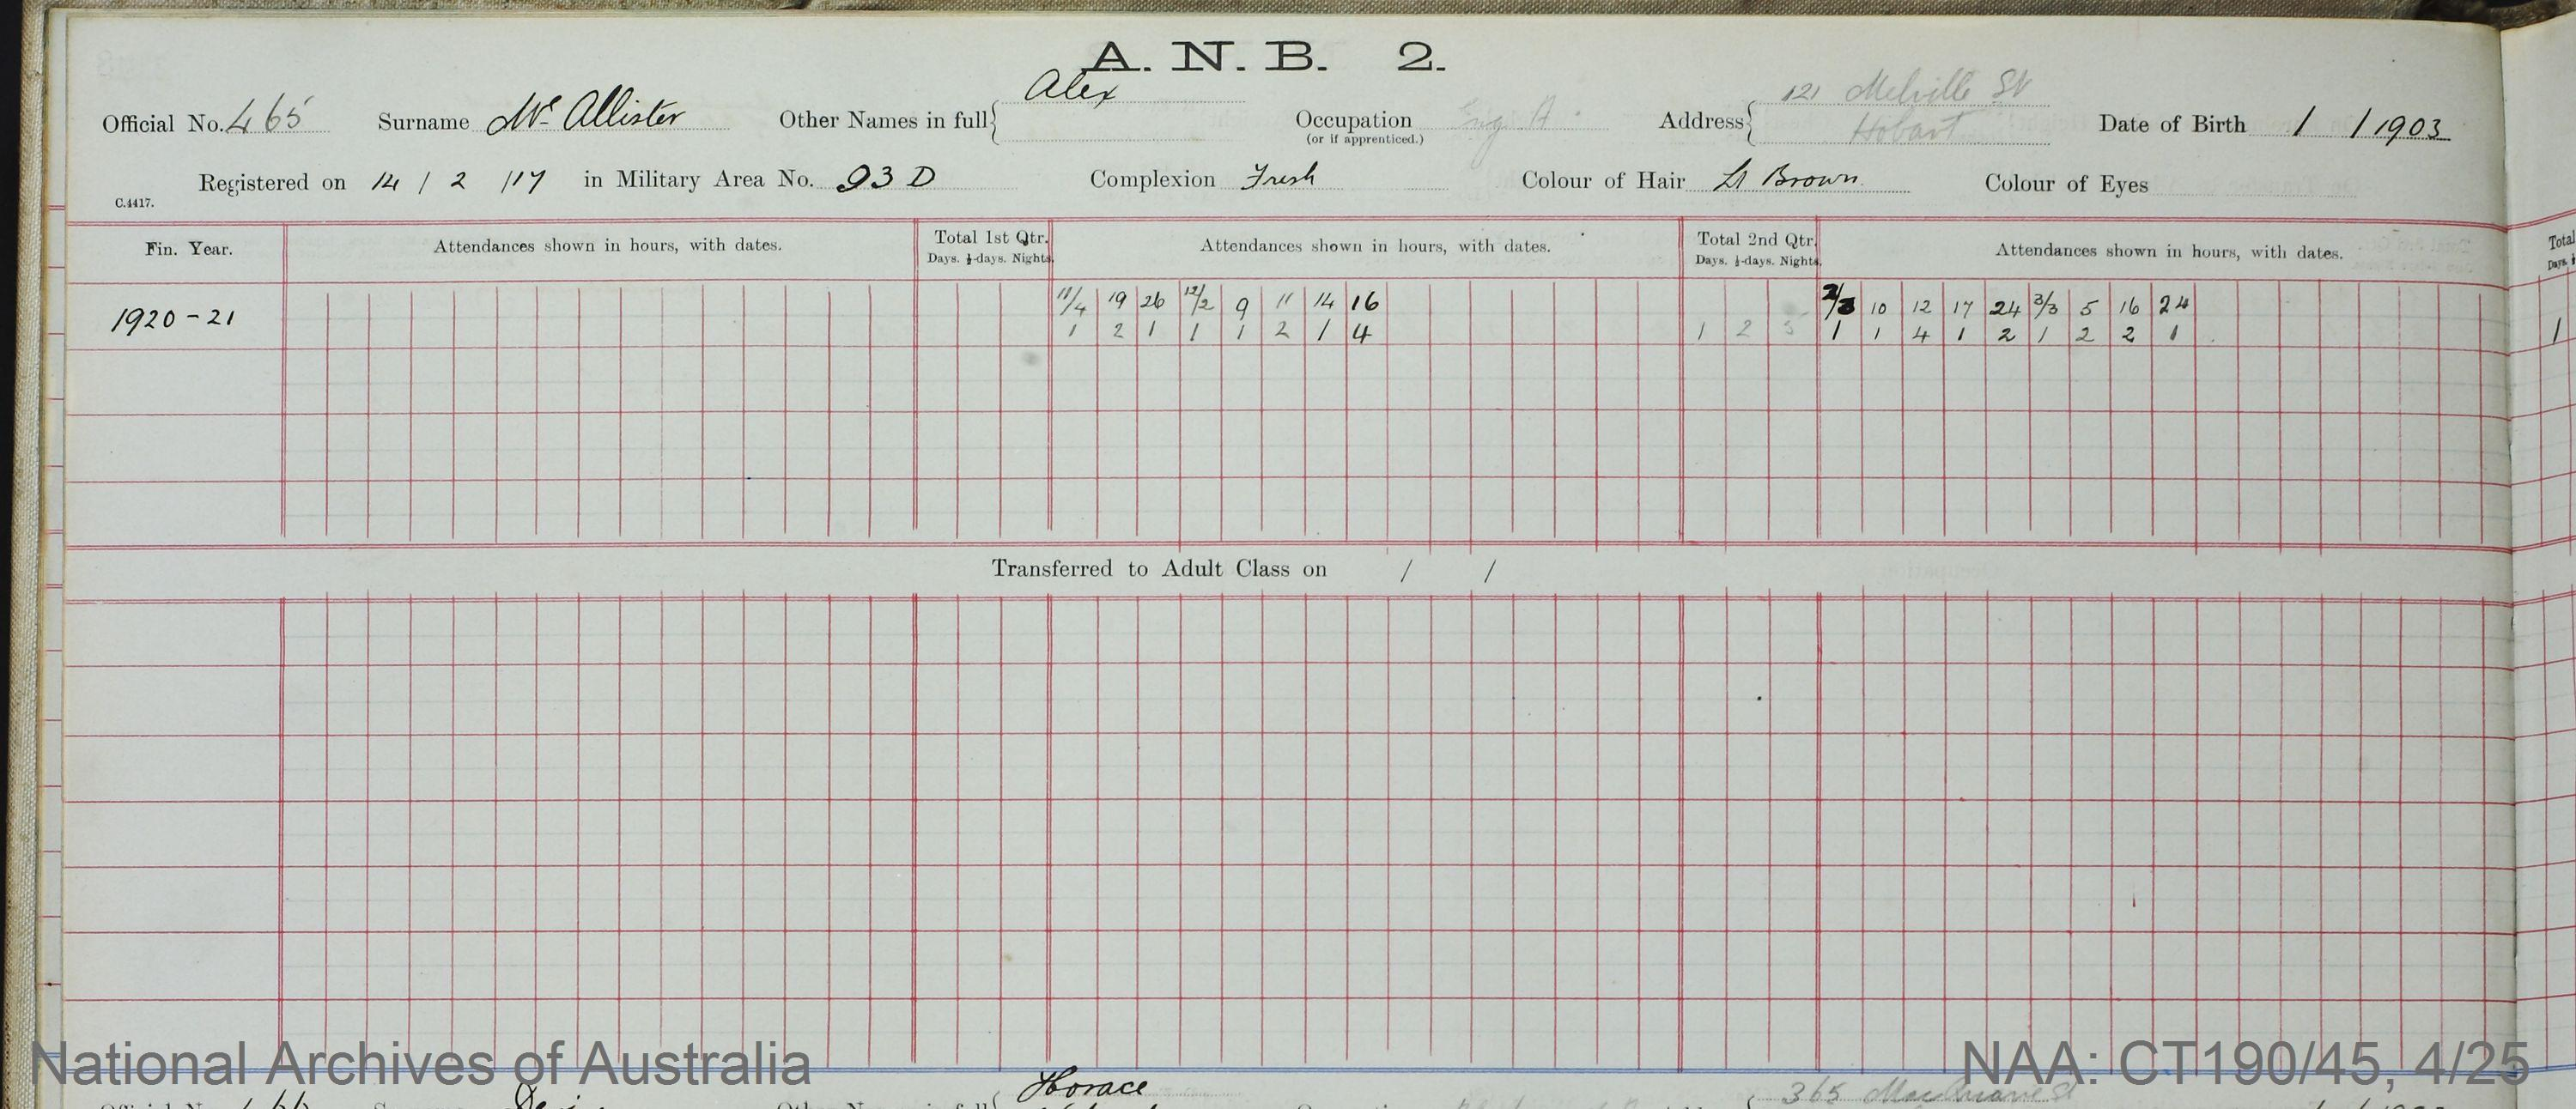 SURNAME - McALLISTER;  GIVEN NAME(S) - Alex;  OFFICIAL NUMBER - 465;  DATE OF BIRTH - 1903;  PLACE OF BIRTH - [Unknown];  NEXT OF KIN - [Unknown];  SERVICE/STATION -Tasmania;  REGISTRATION DATE - 14 February 1917